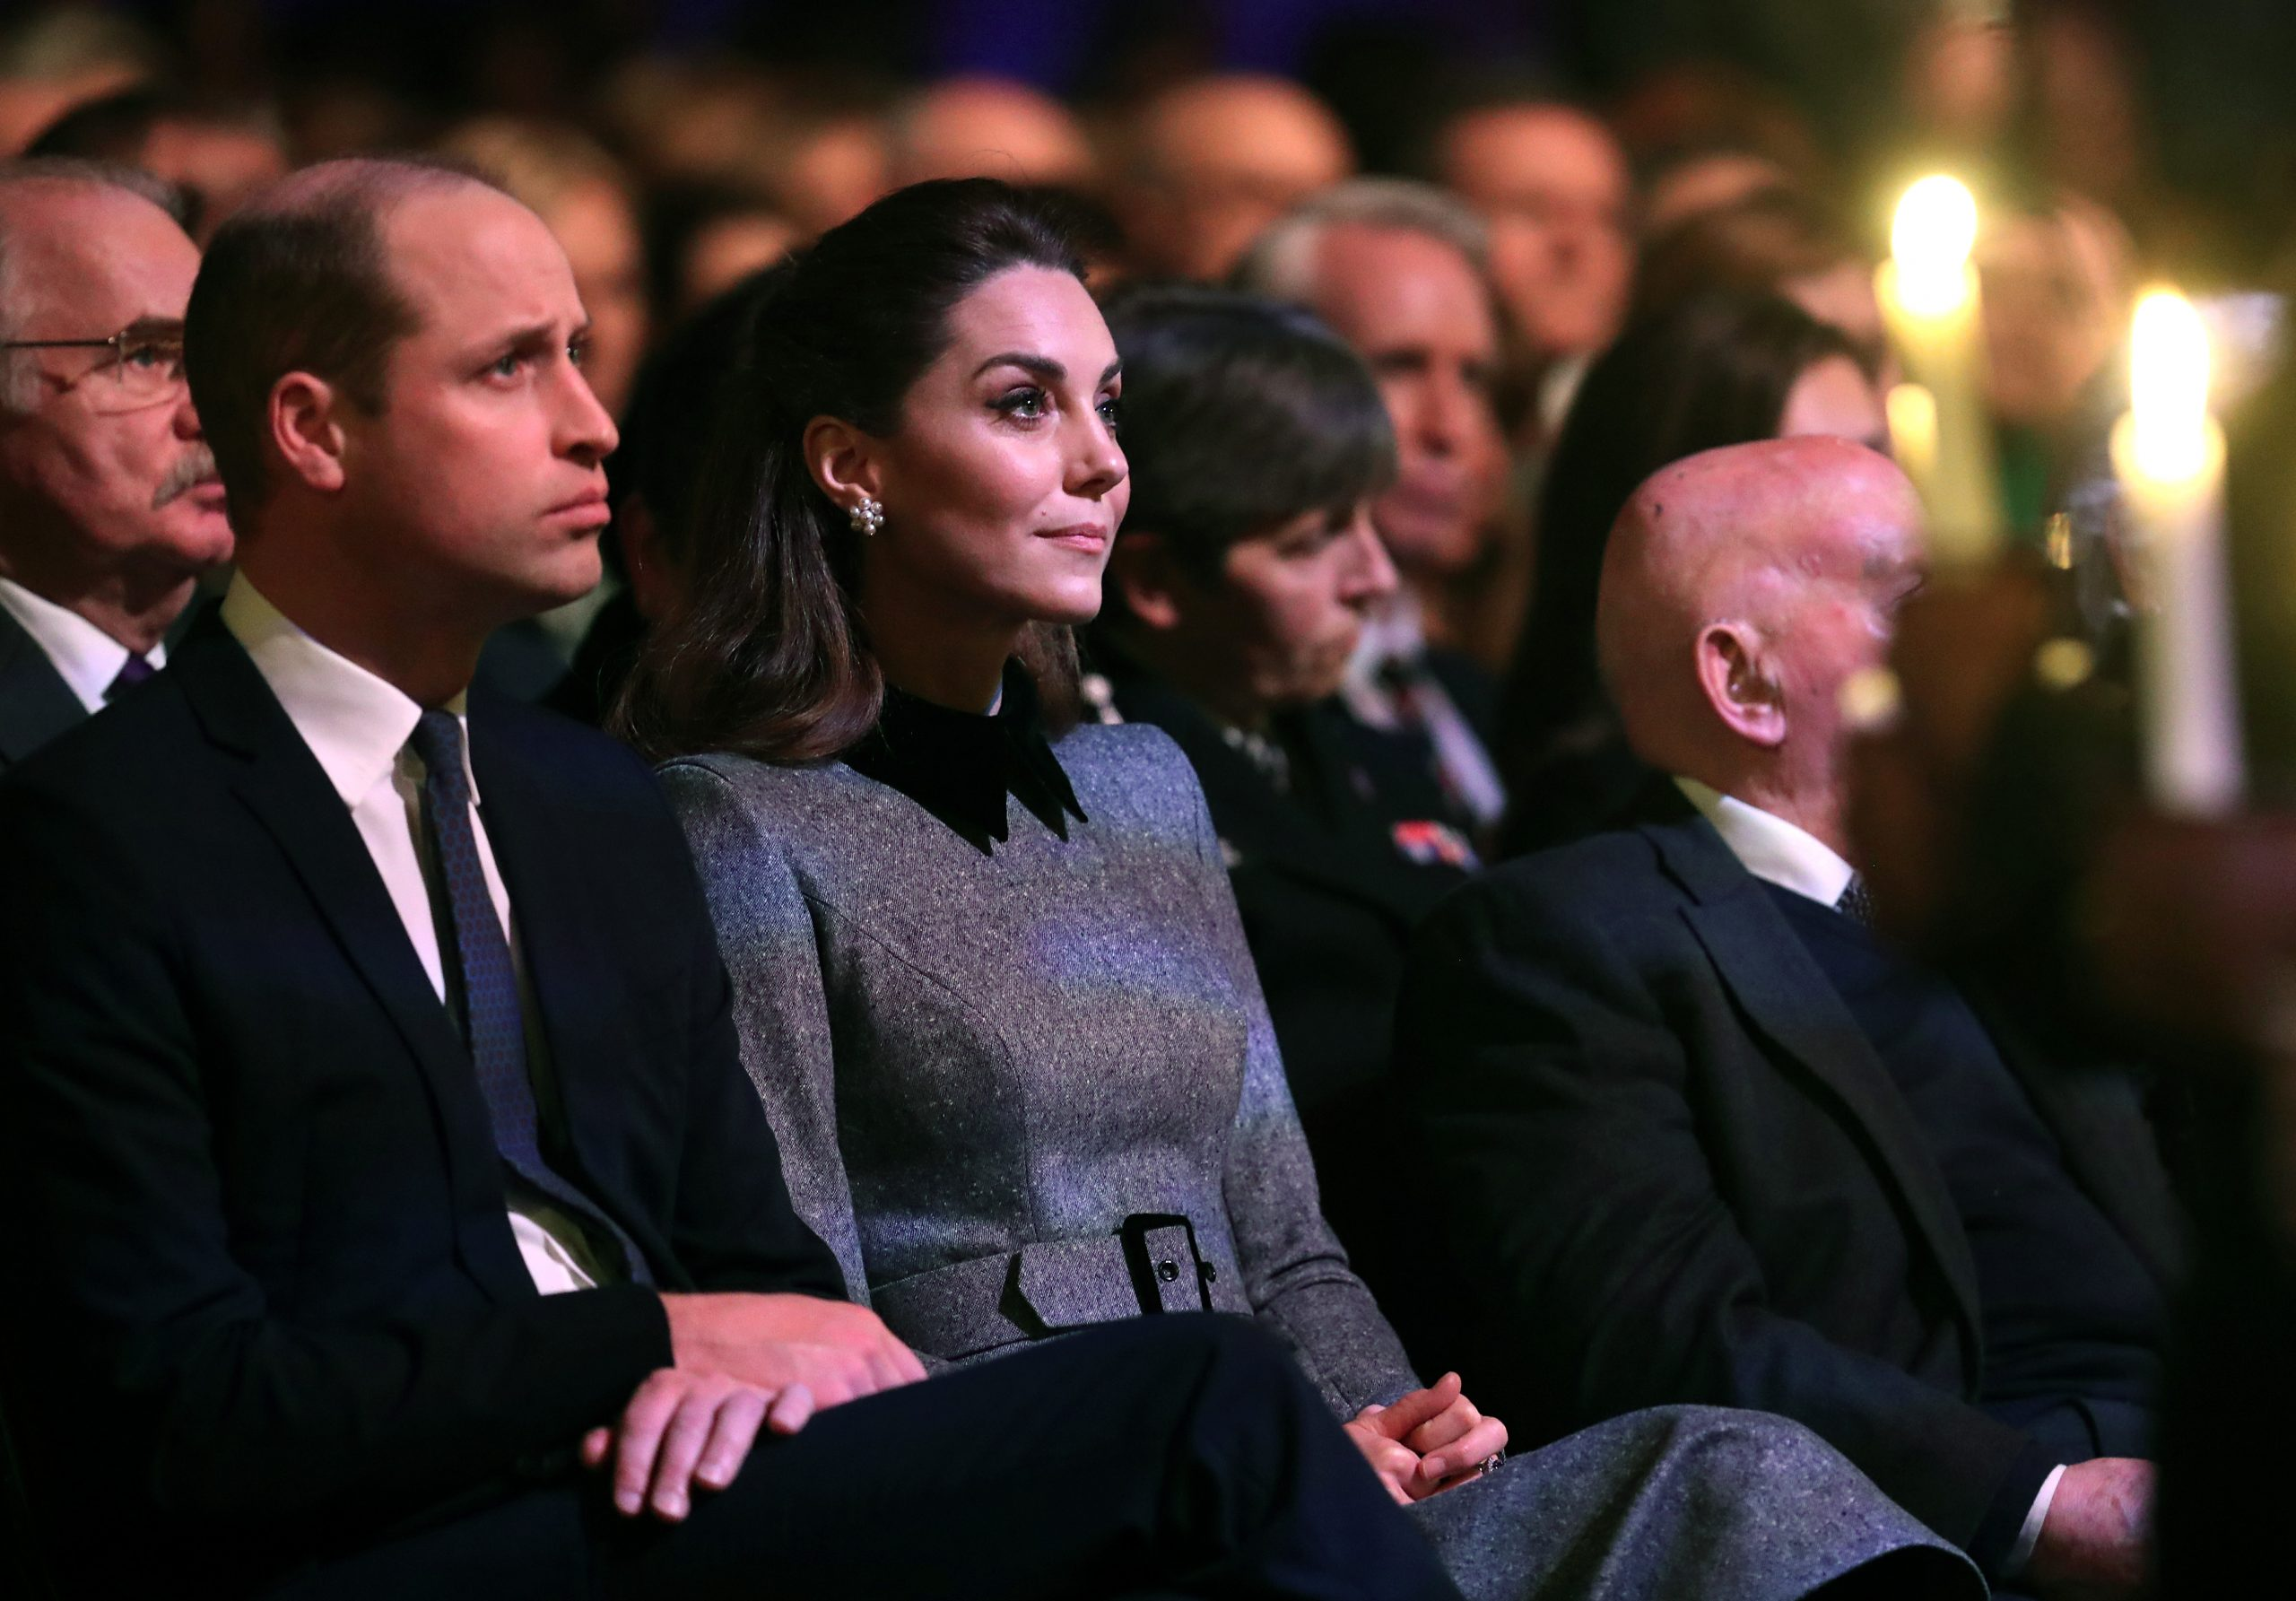 duke and duchess of cambridge at holocaust memorial service